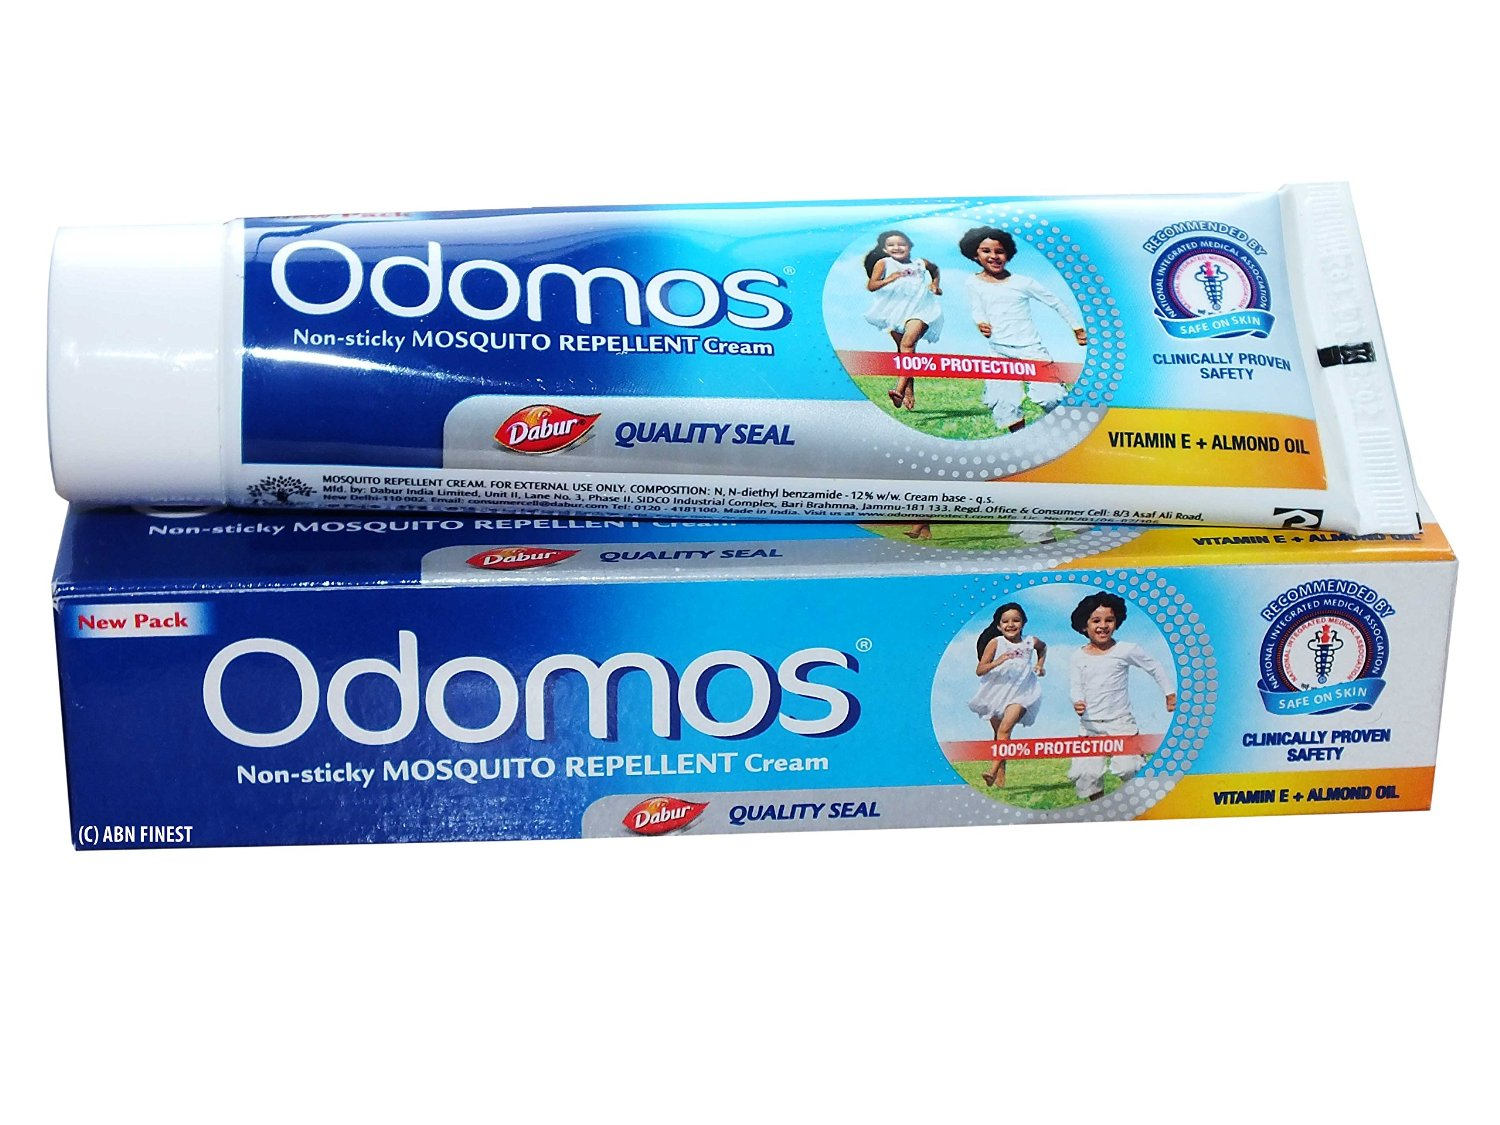 Odomos Repellent Cream Image